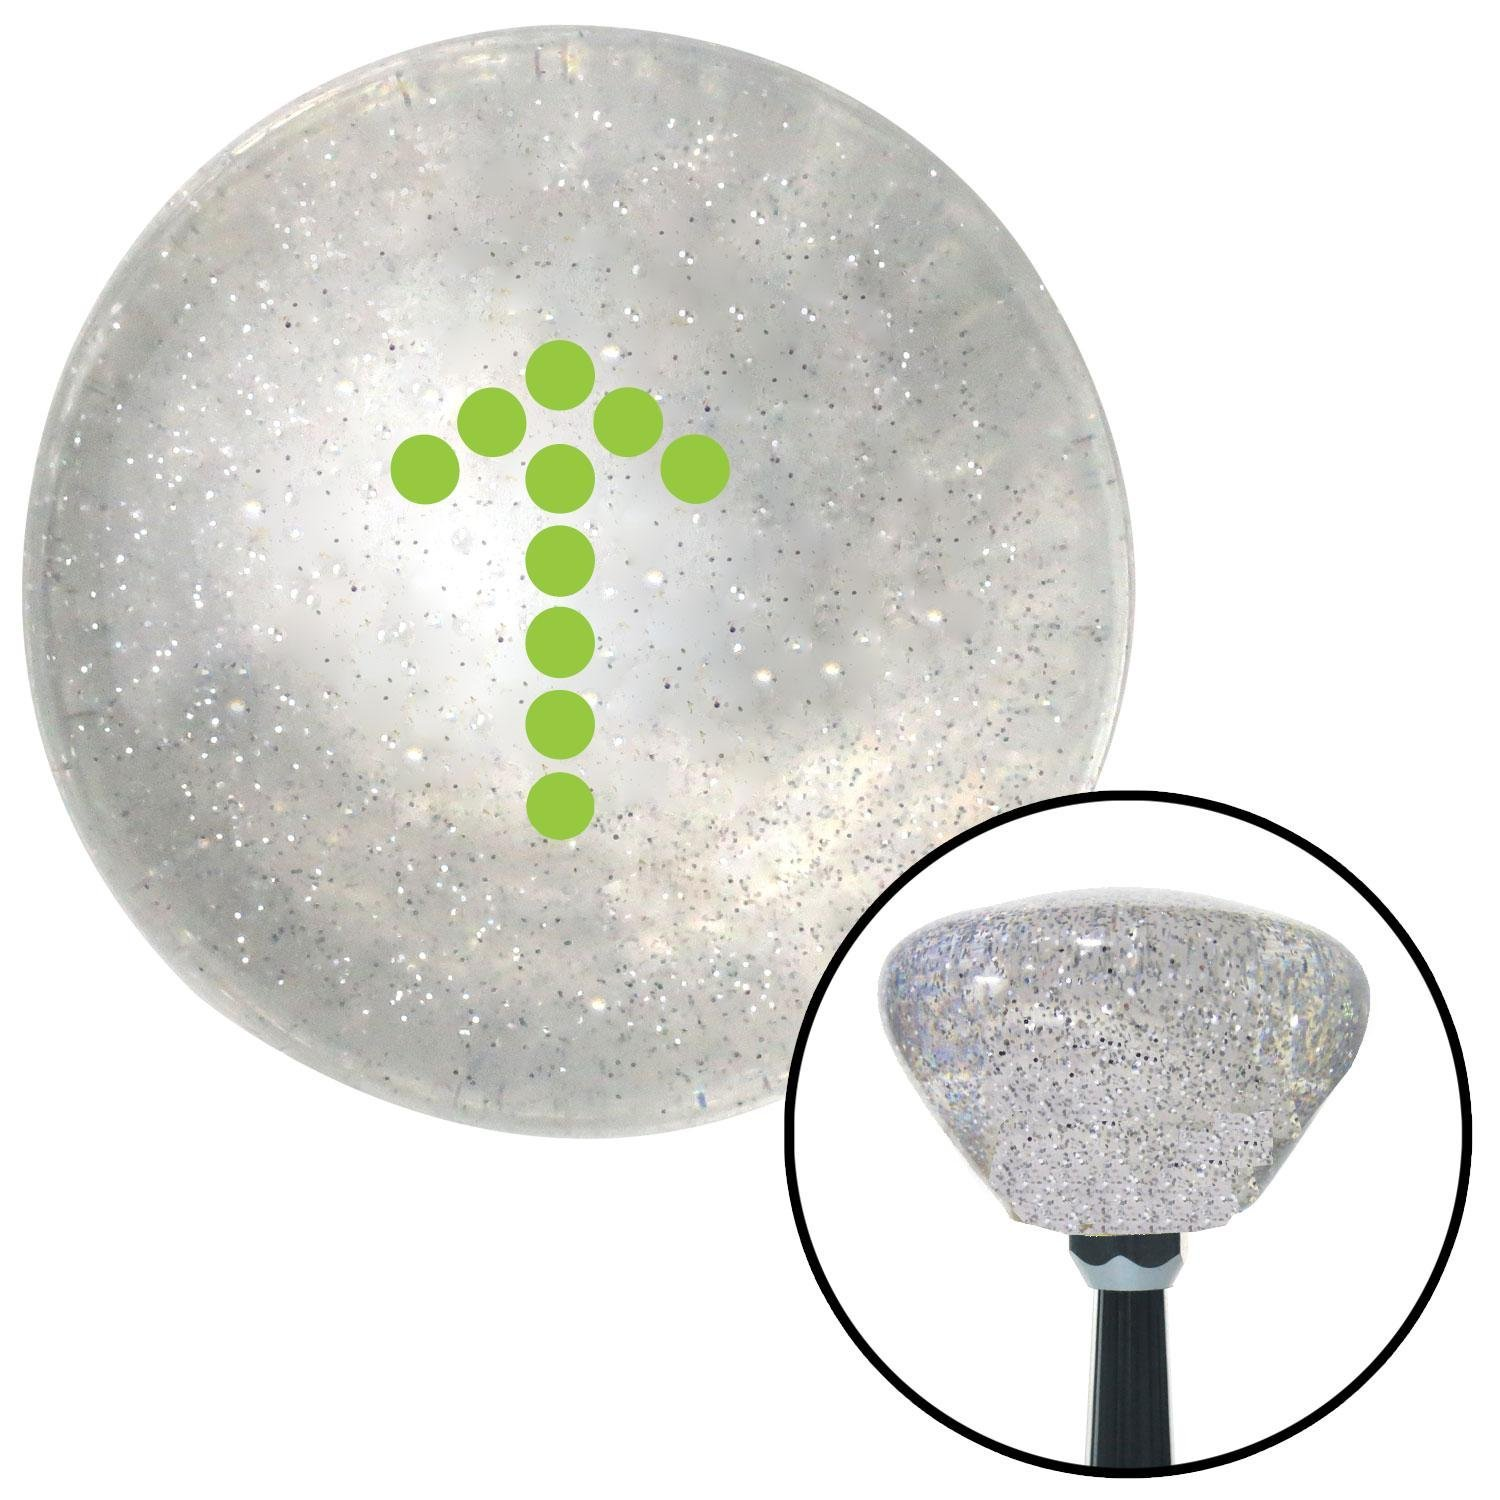 Green Dotted Directional Arrow Up American Shifter 160132 Clear Retro Metal Flake Shift Knob with M16 x 1.5 Insert